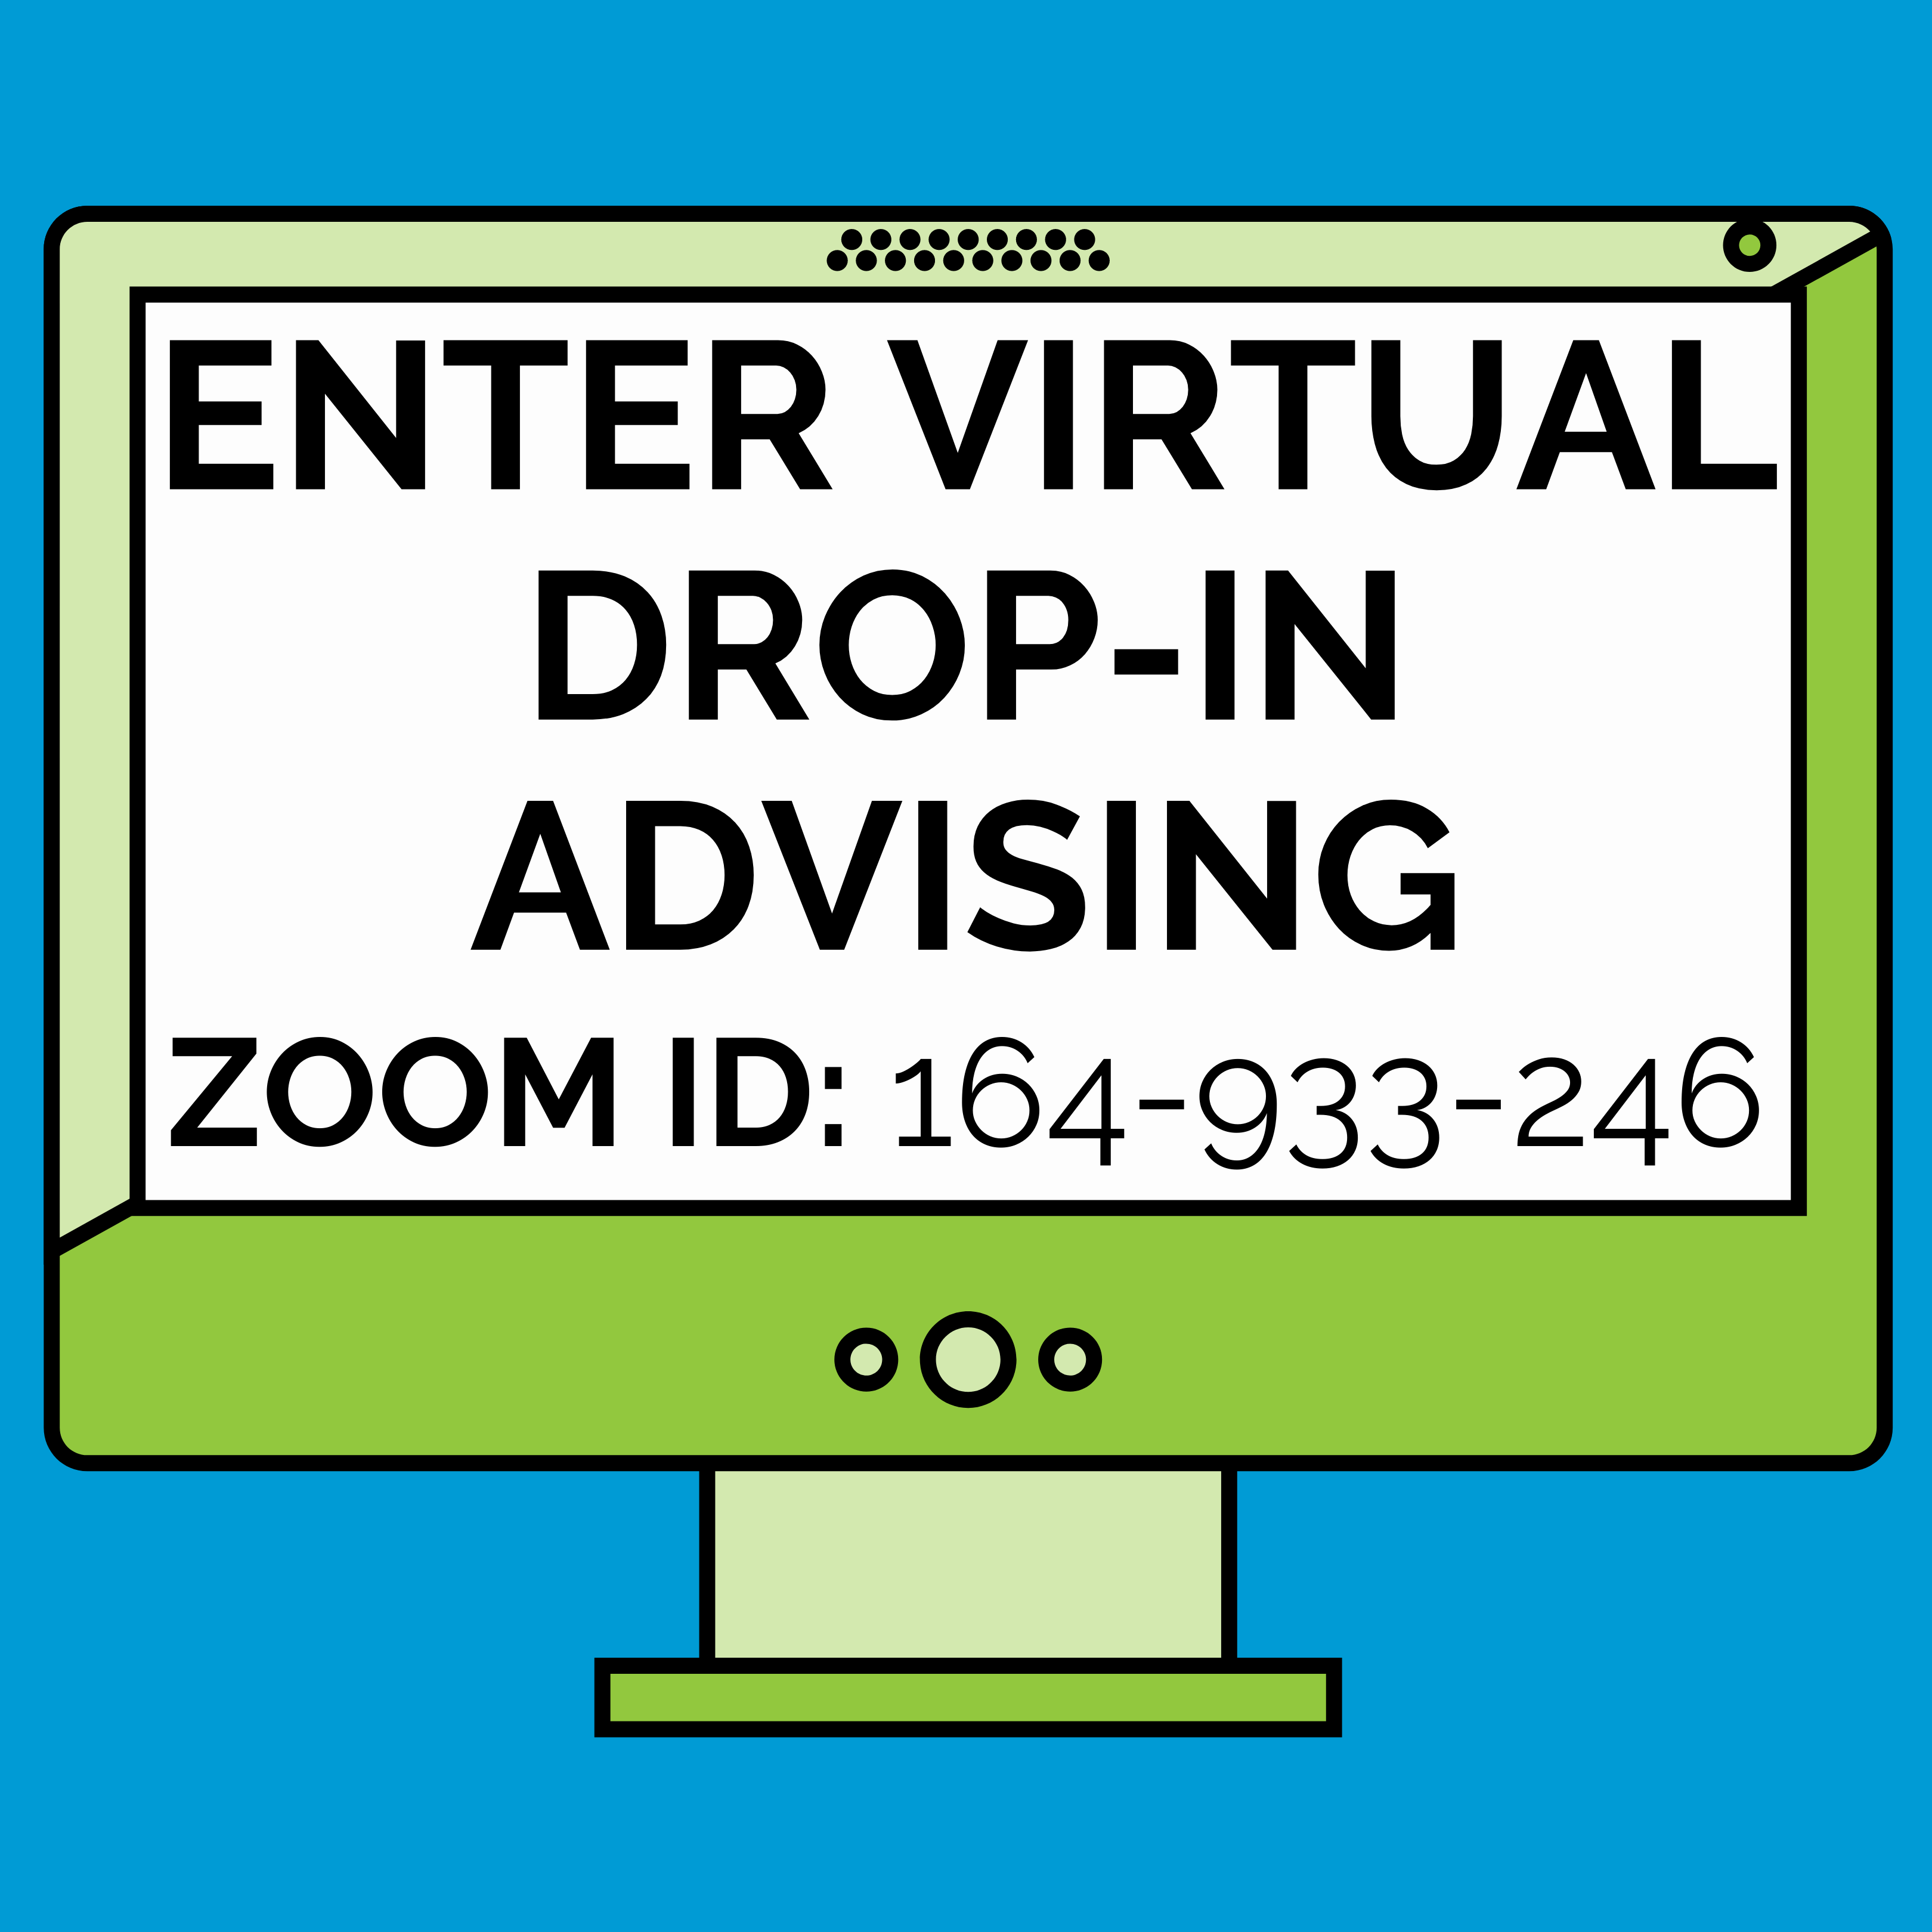 AIP and UCDC Online Drop-in Advising